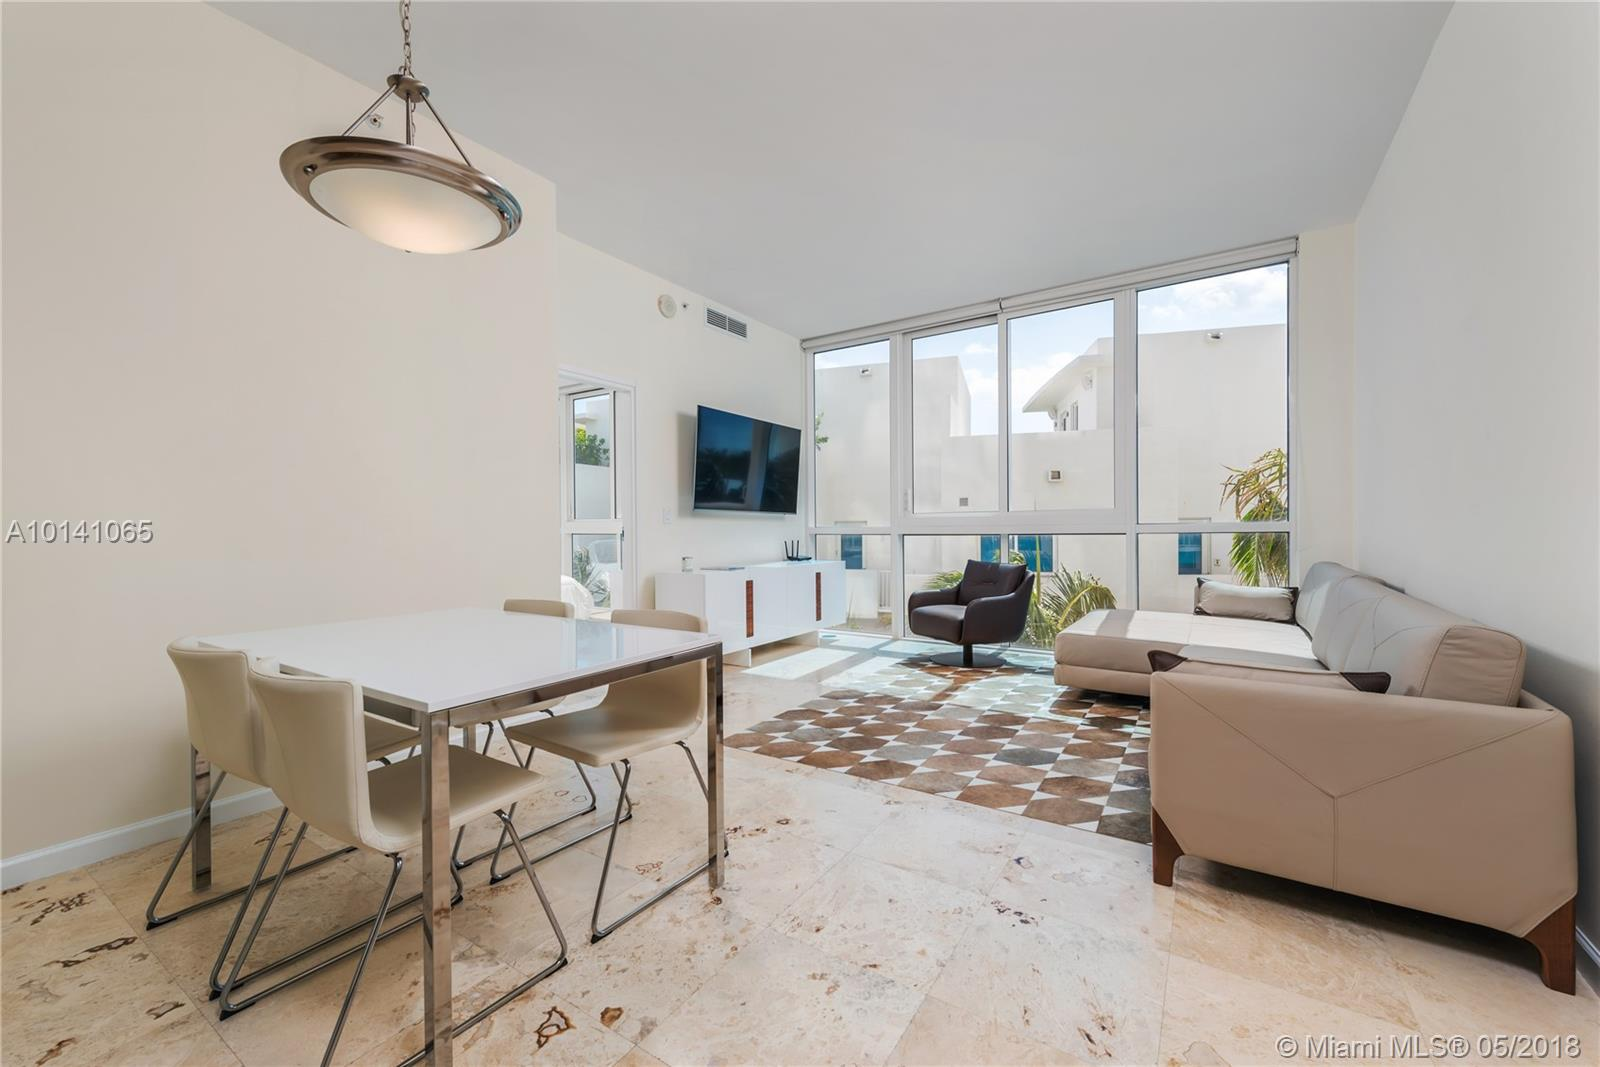 50 S Pointe Drve #601, Miami Beach FL, 33139